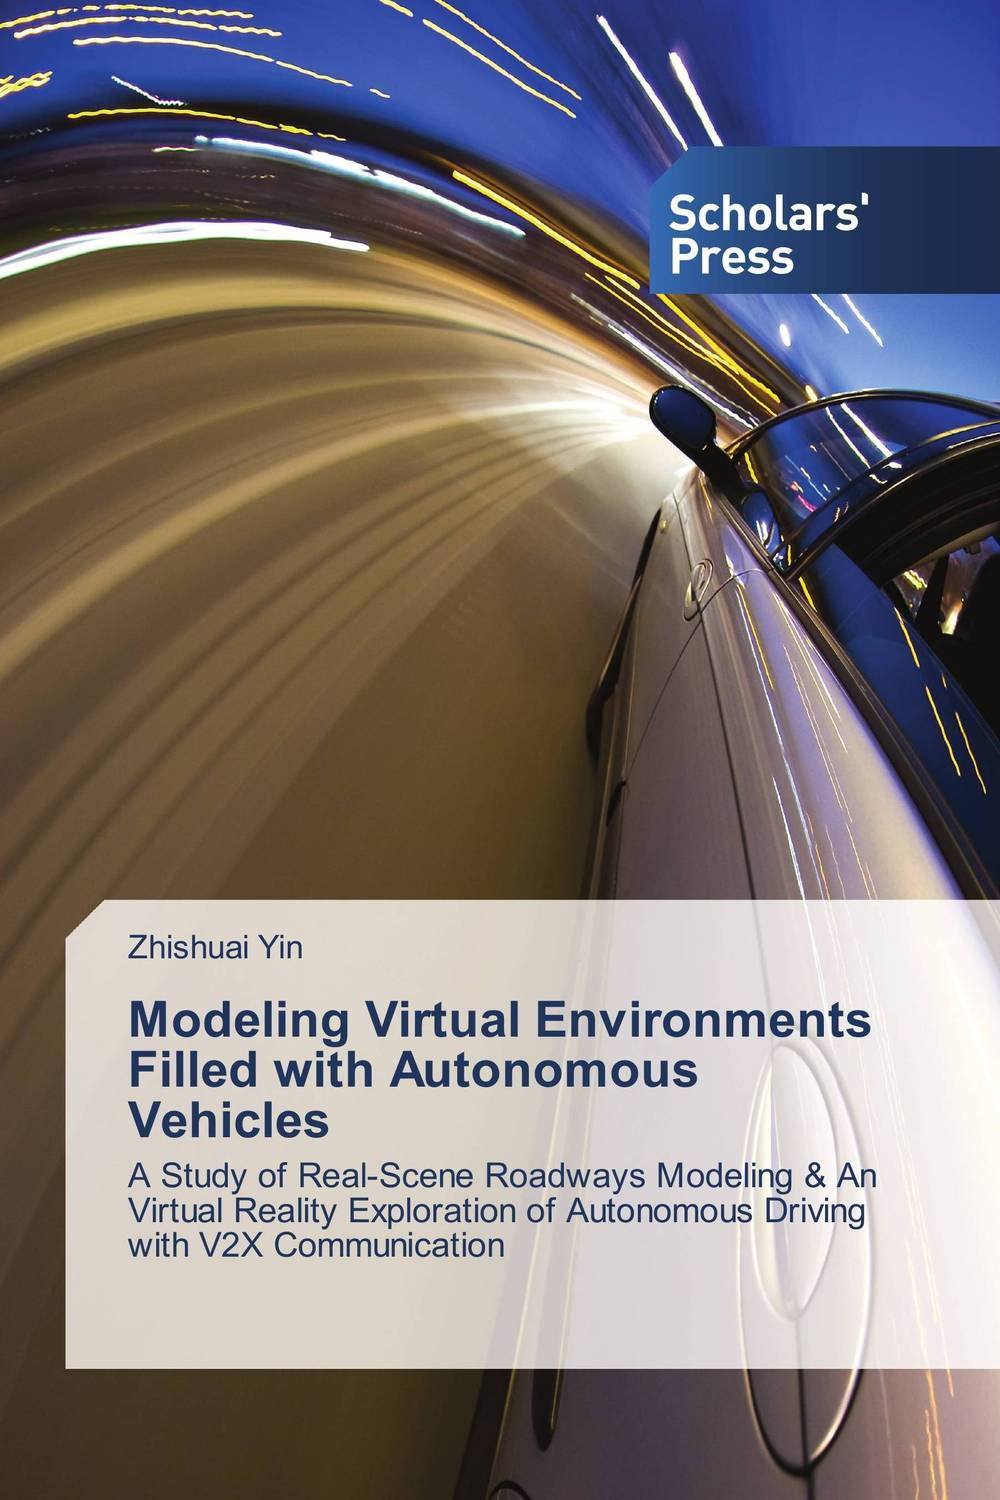 Modeling Virtual Environments Filled with Autonomous Vehicles microsimulation modeling of ict policies at firm level